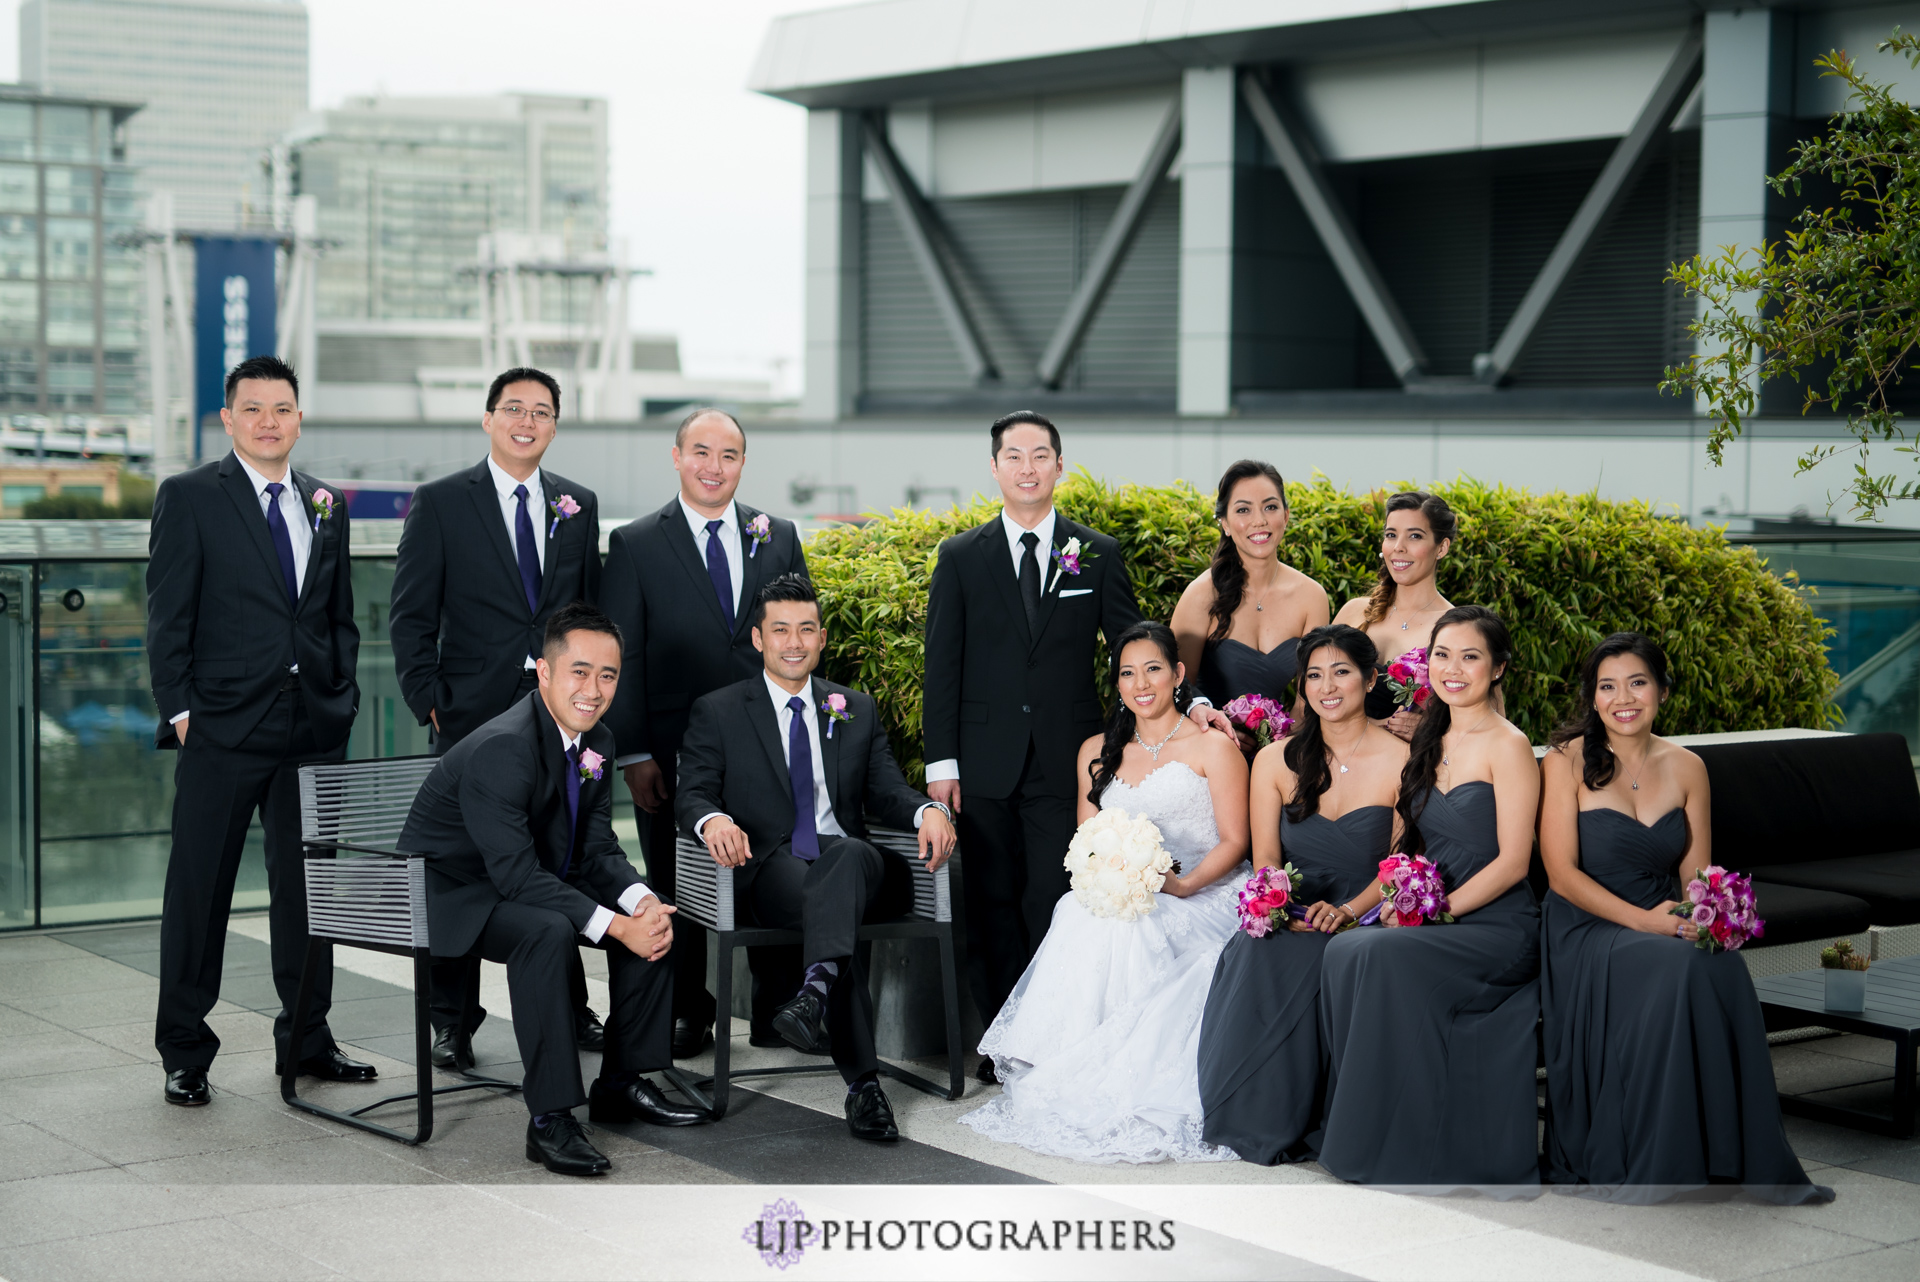 10-jw-marriott-los-angeles-wedding-photographer-first-look-wedding-party-couple-session-photos